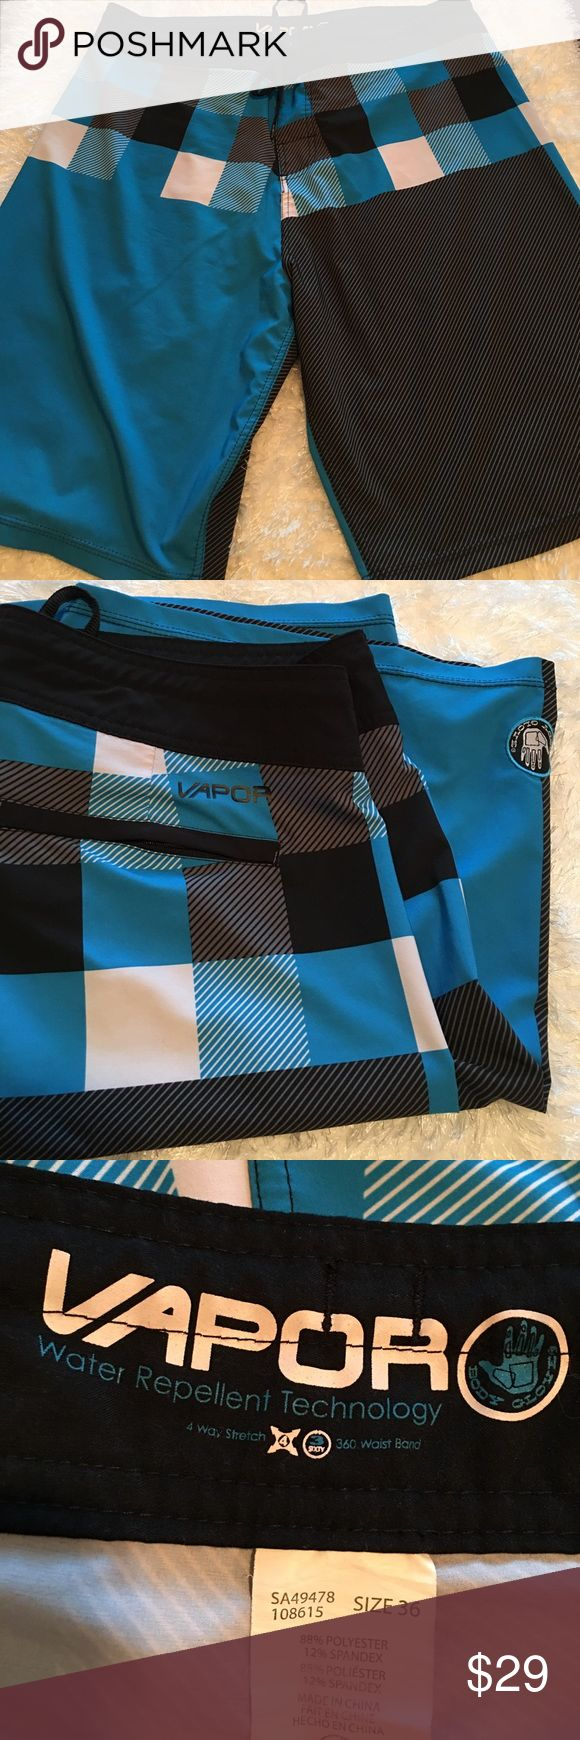 """BODY GLOVE VALOR BOARDSHORTS Valor water repellent technology in a cool design! One zipper back pocket and Velcro/tie waist. EUC. 36"""" waist, approx 10"""" inseam. Body Glove Swim Board Shorts"""